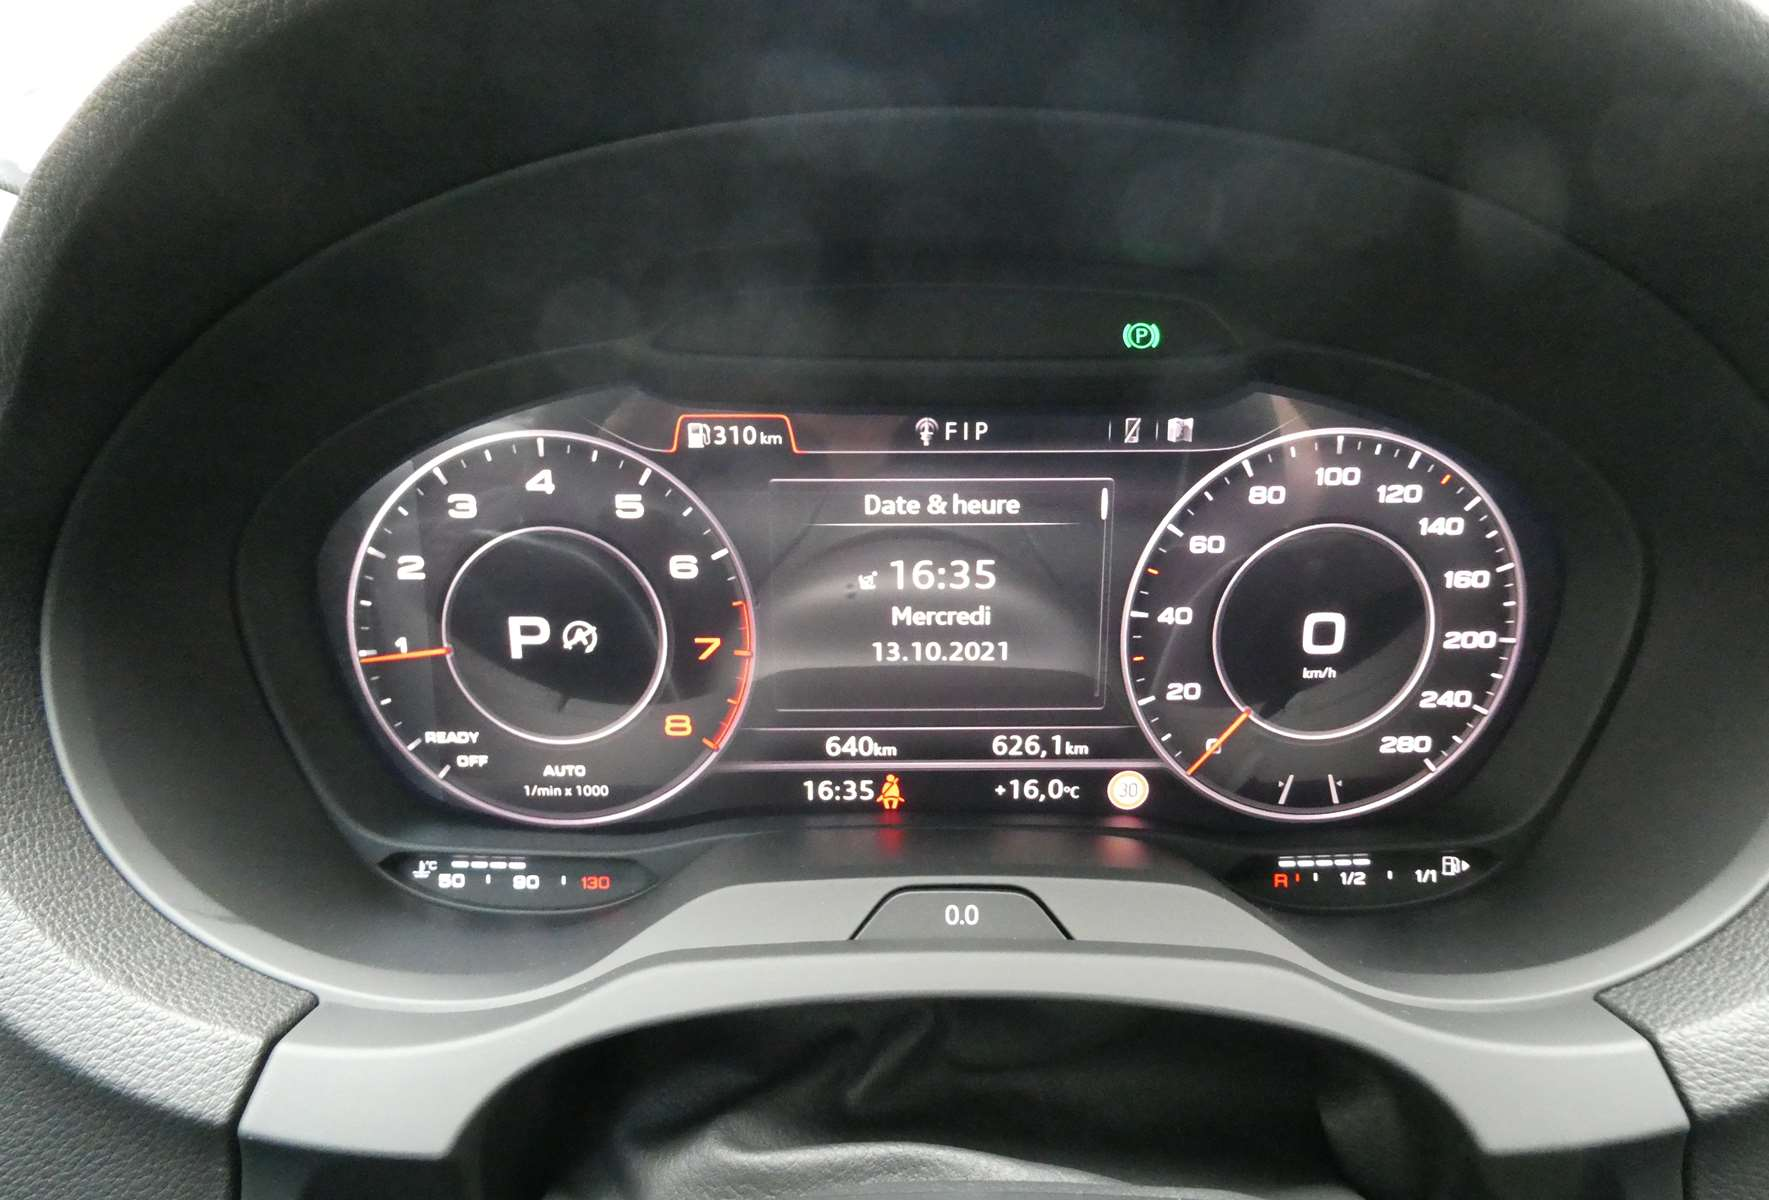 Audi A3 (2) cabriolet 35 TFSI 150 Design luxe S tronic 7 26